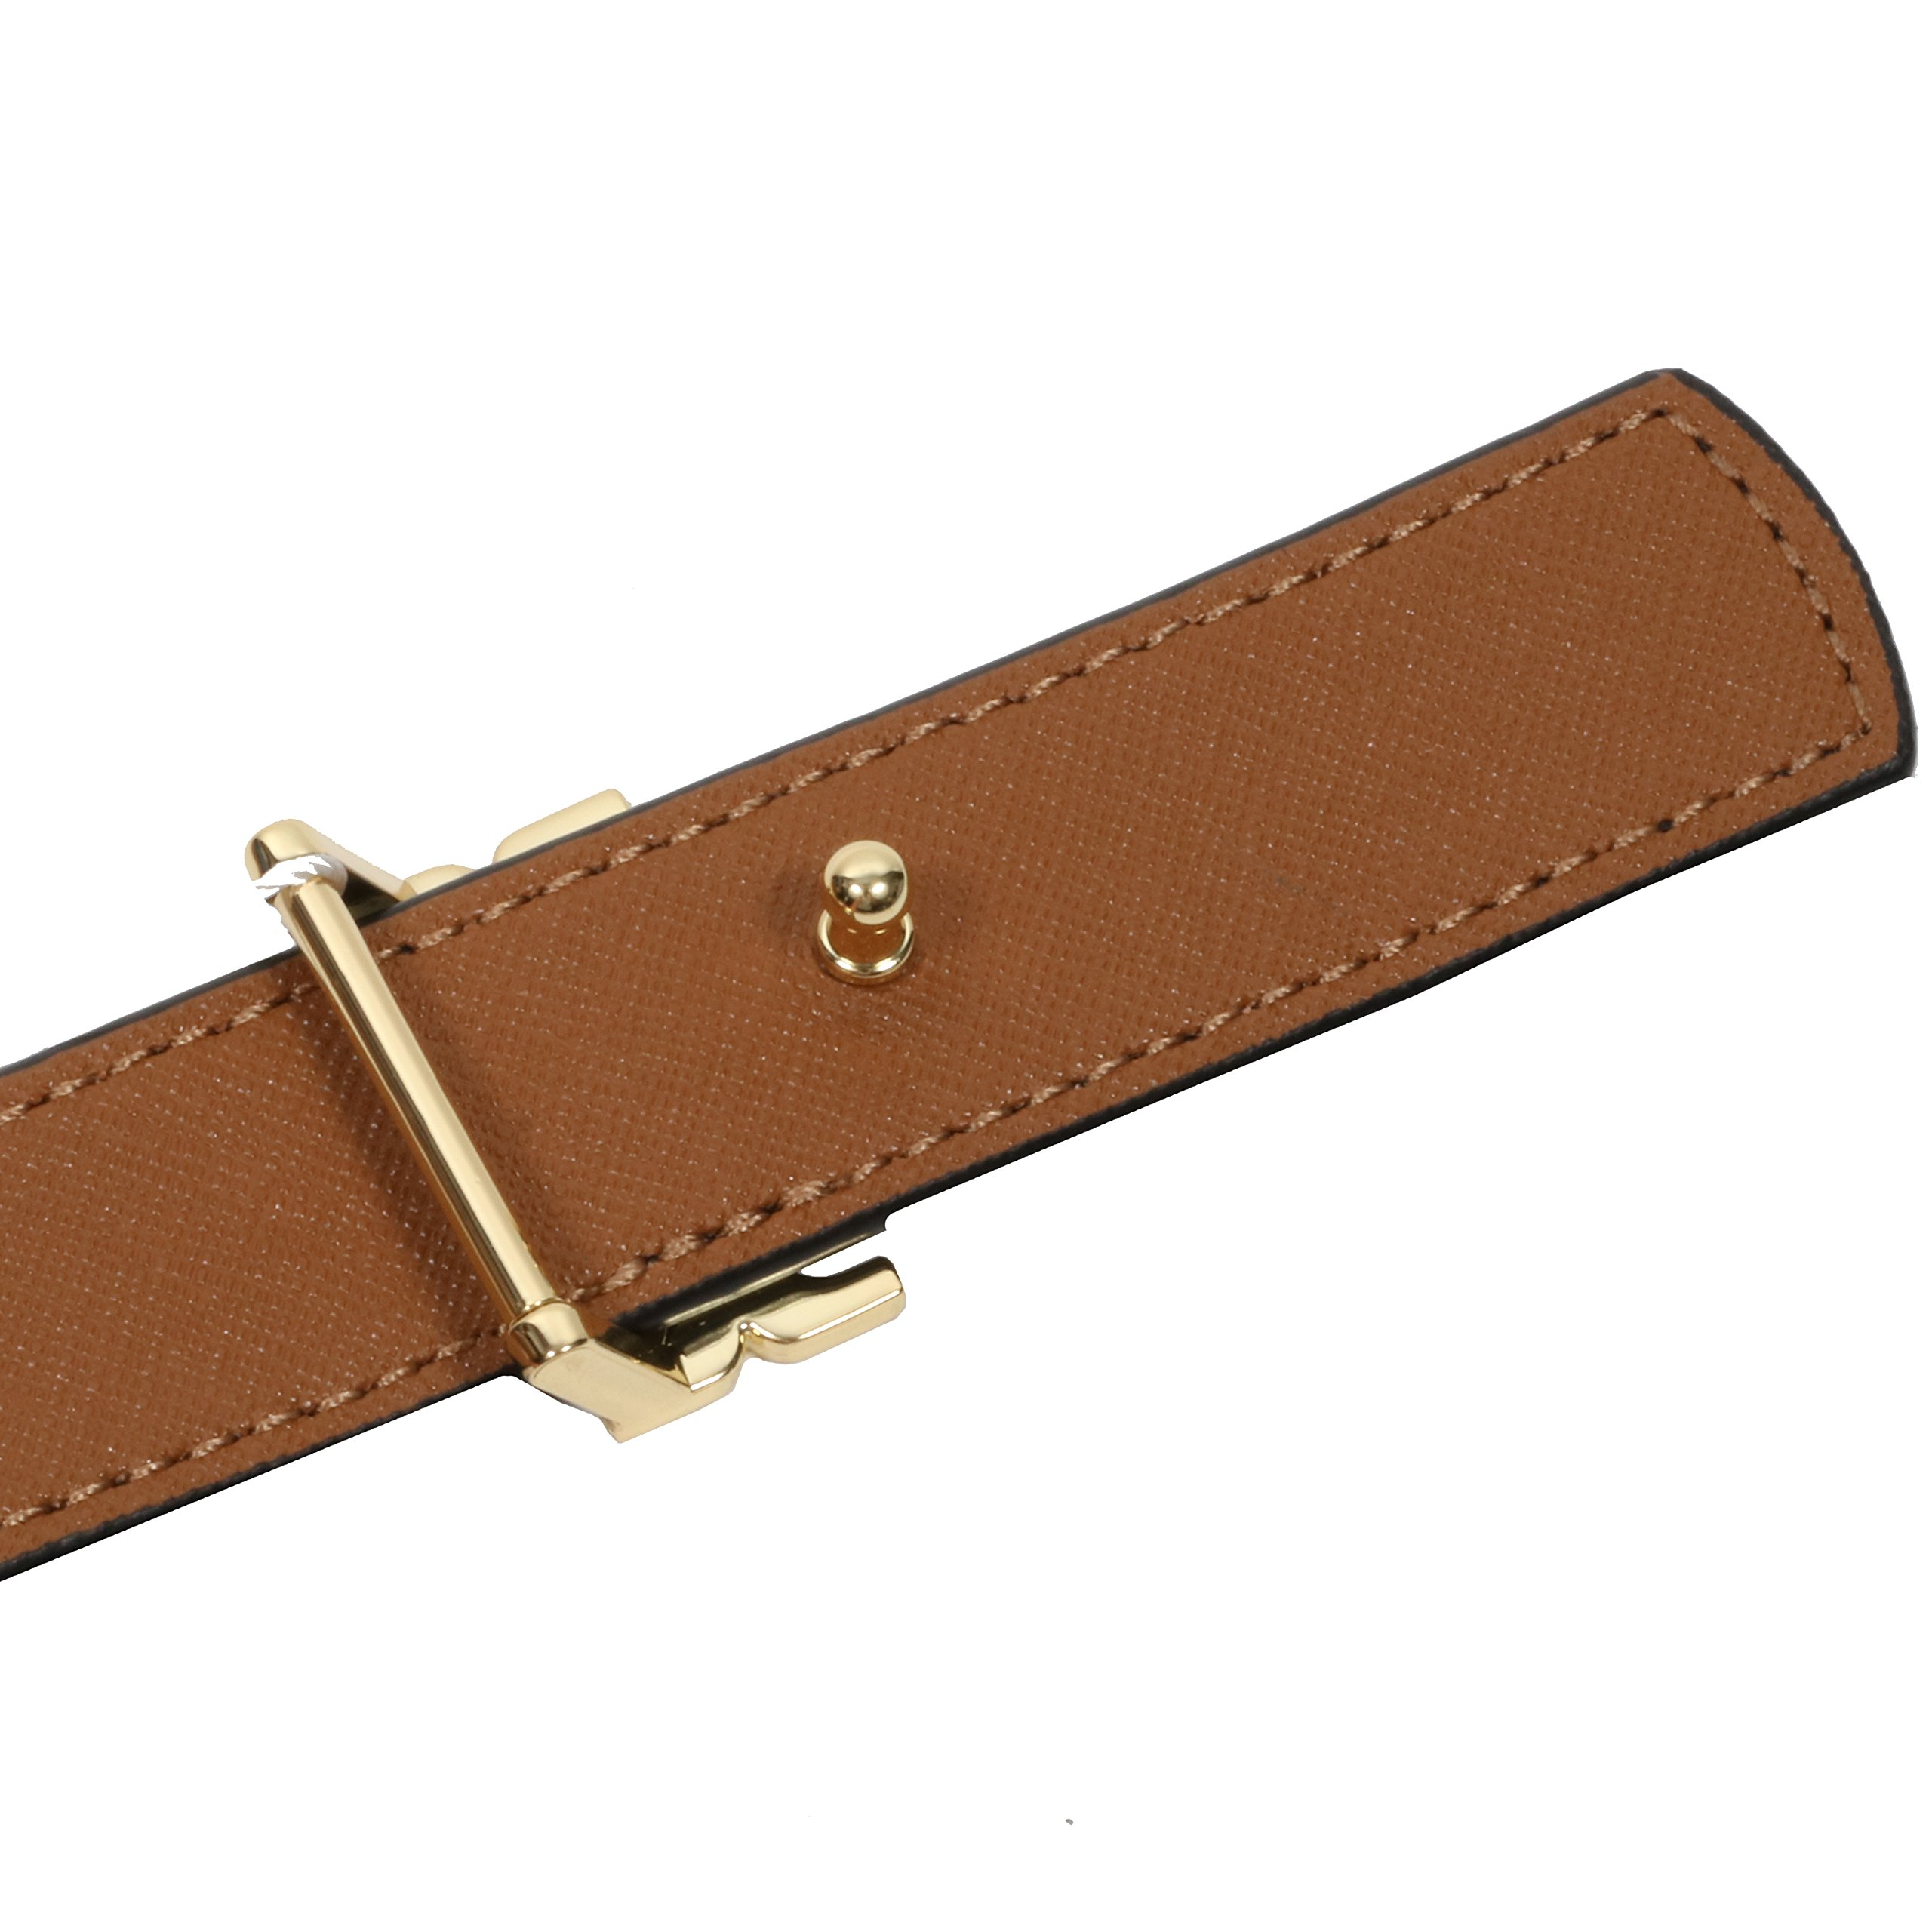 Tory Burch Women's 1'' Genuine Leather Square Logo Buckle Belt Black Brown (Large) by Tory Burch (Image #2)